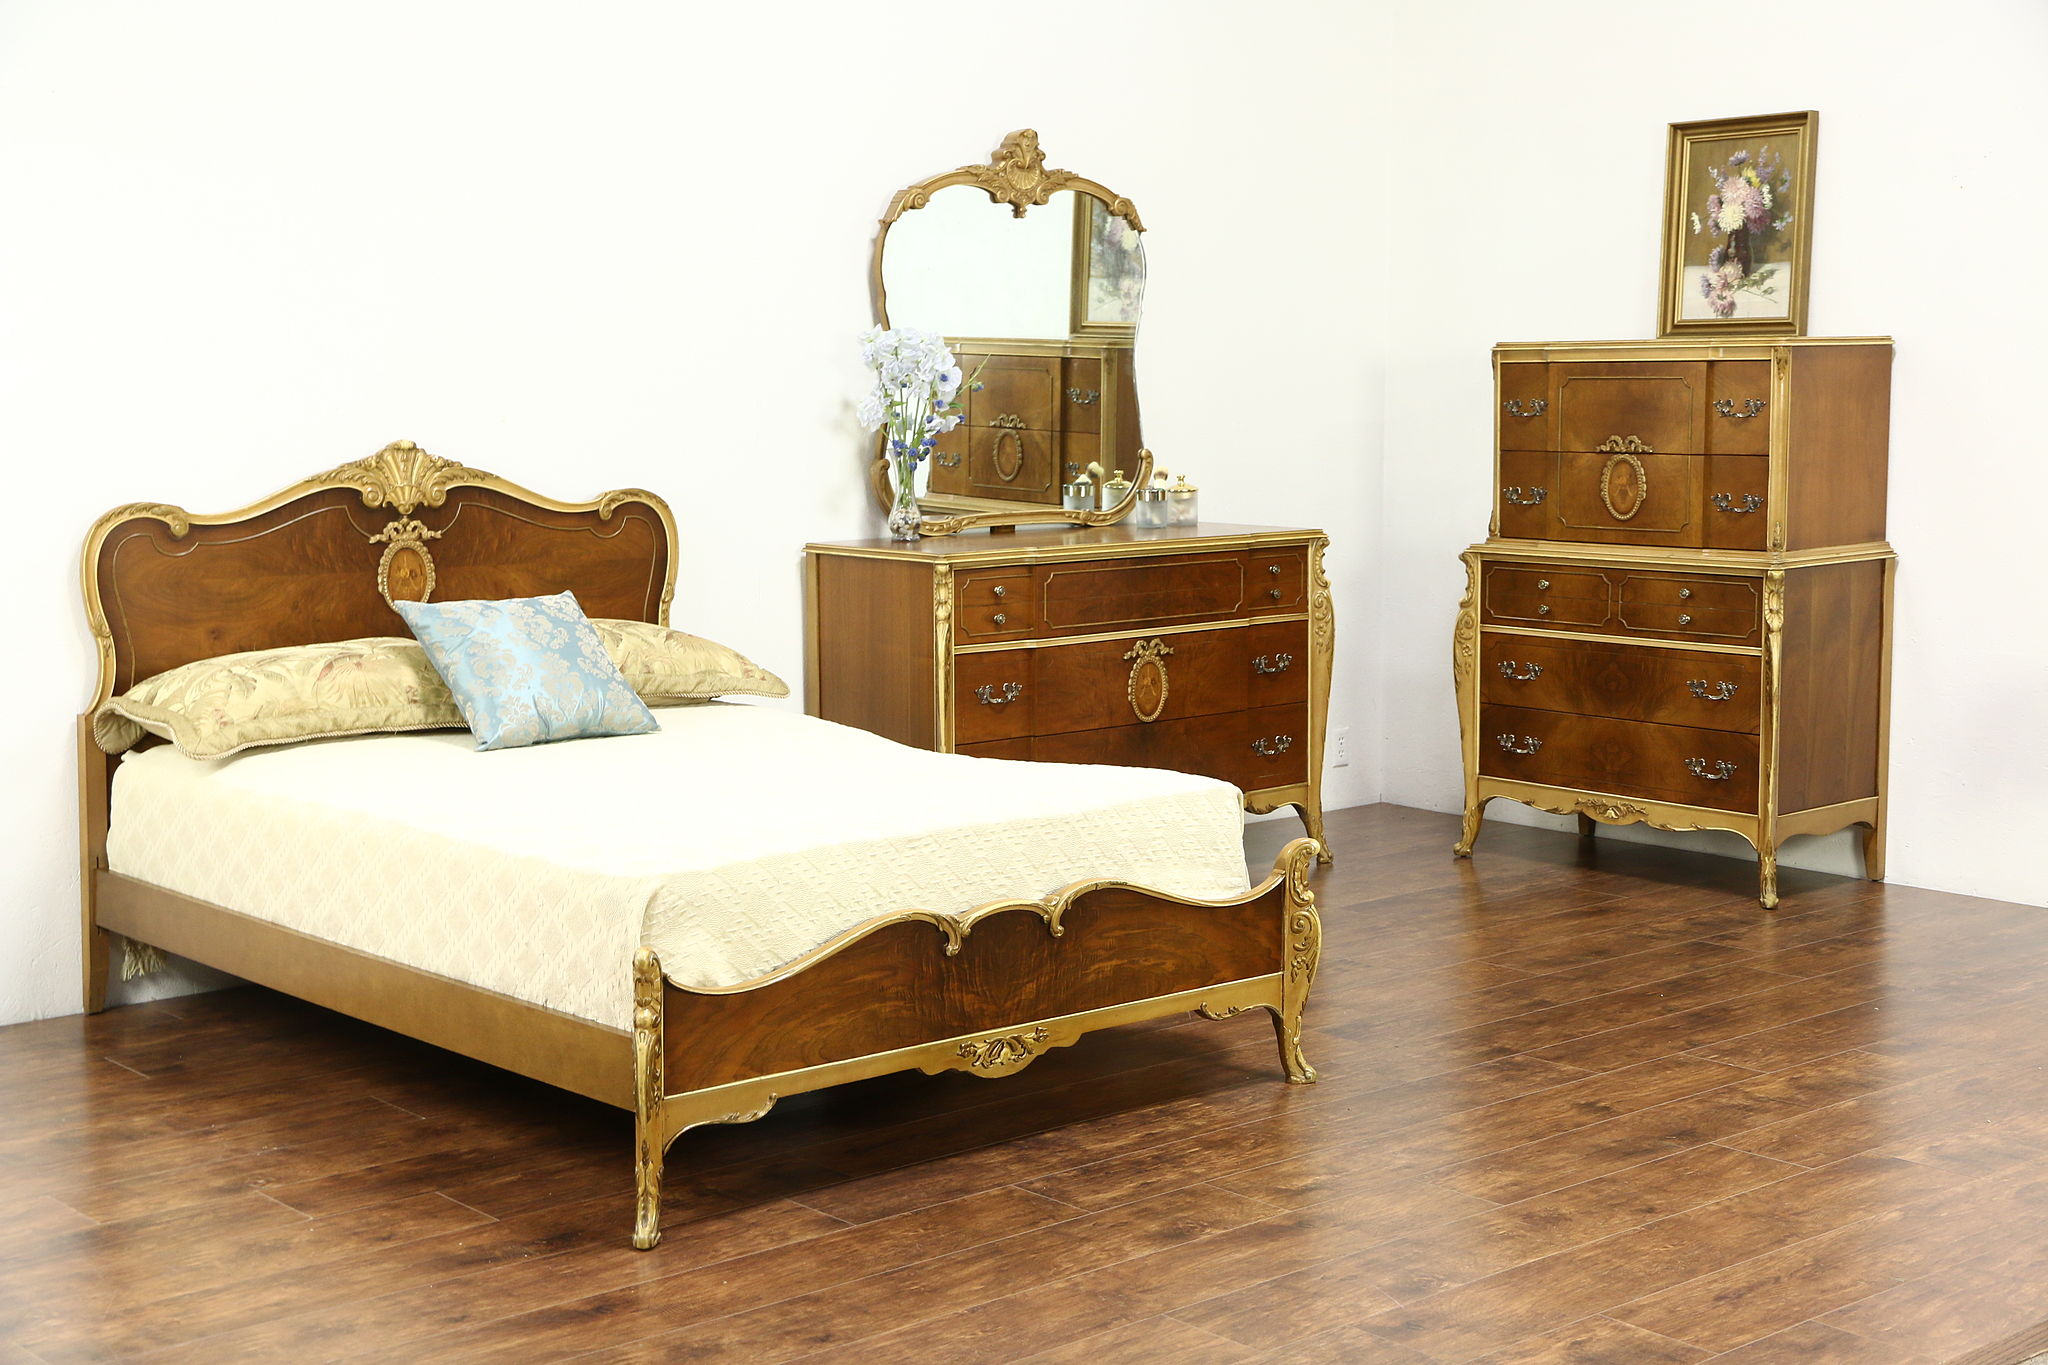 French Style 1940\'s Vintage 3 Pc Bedroom Set, Full Size Bed, Signed Joerns